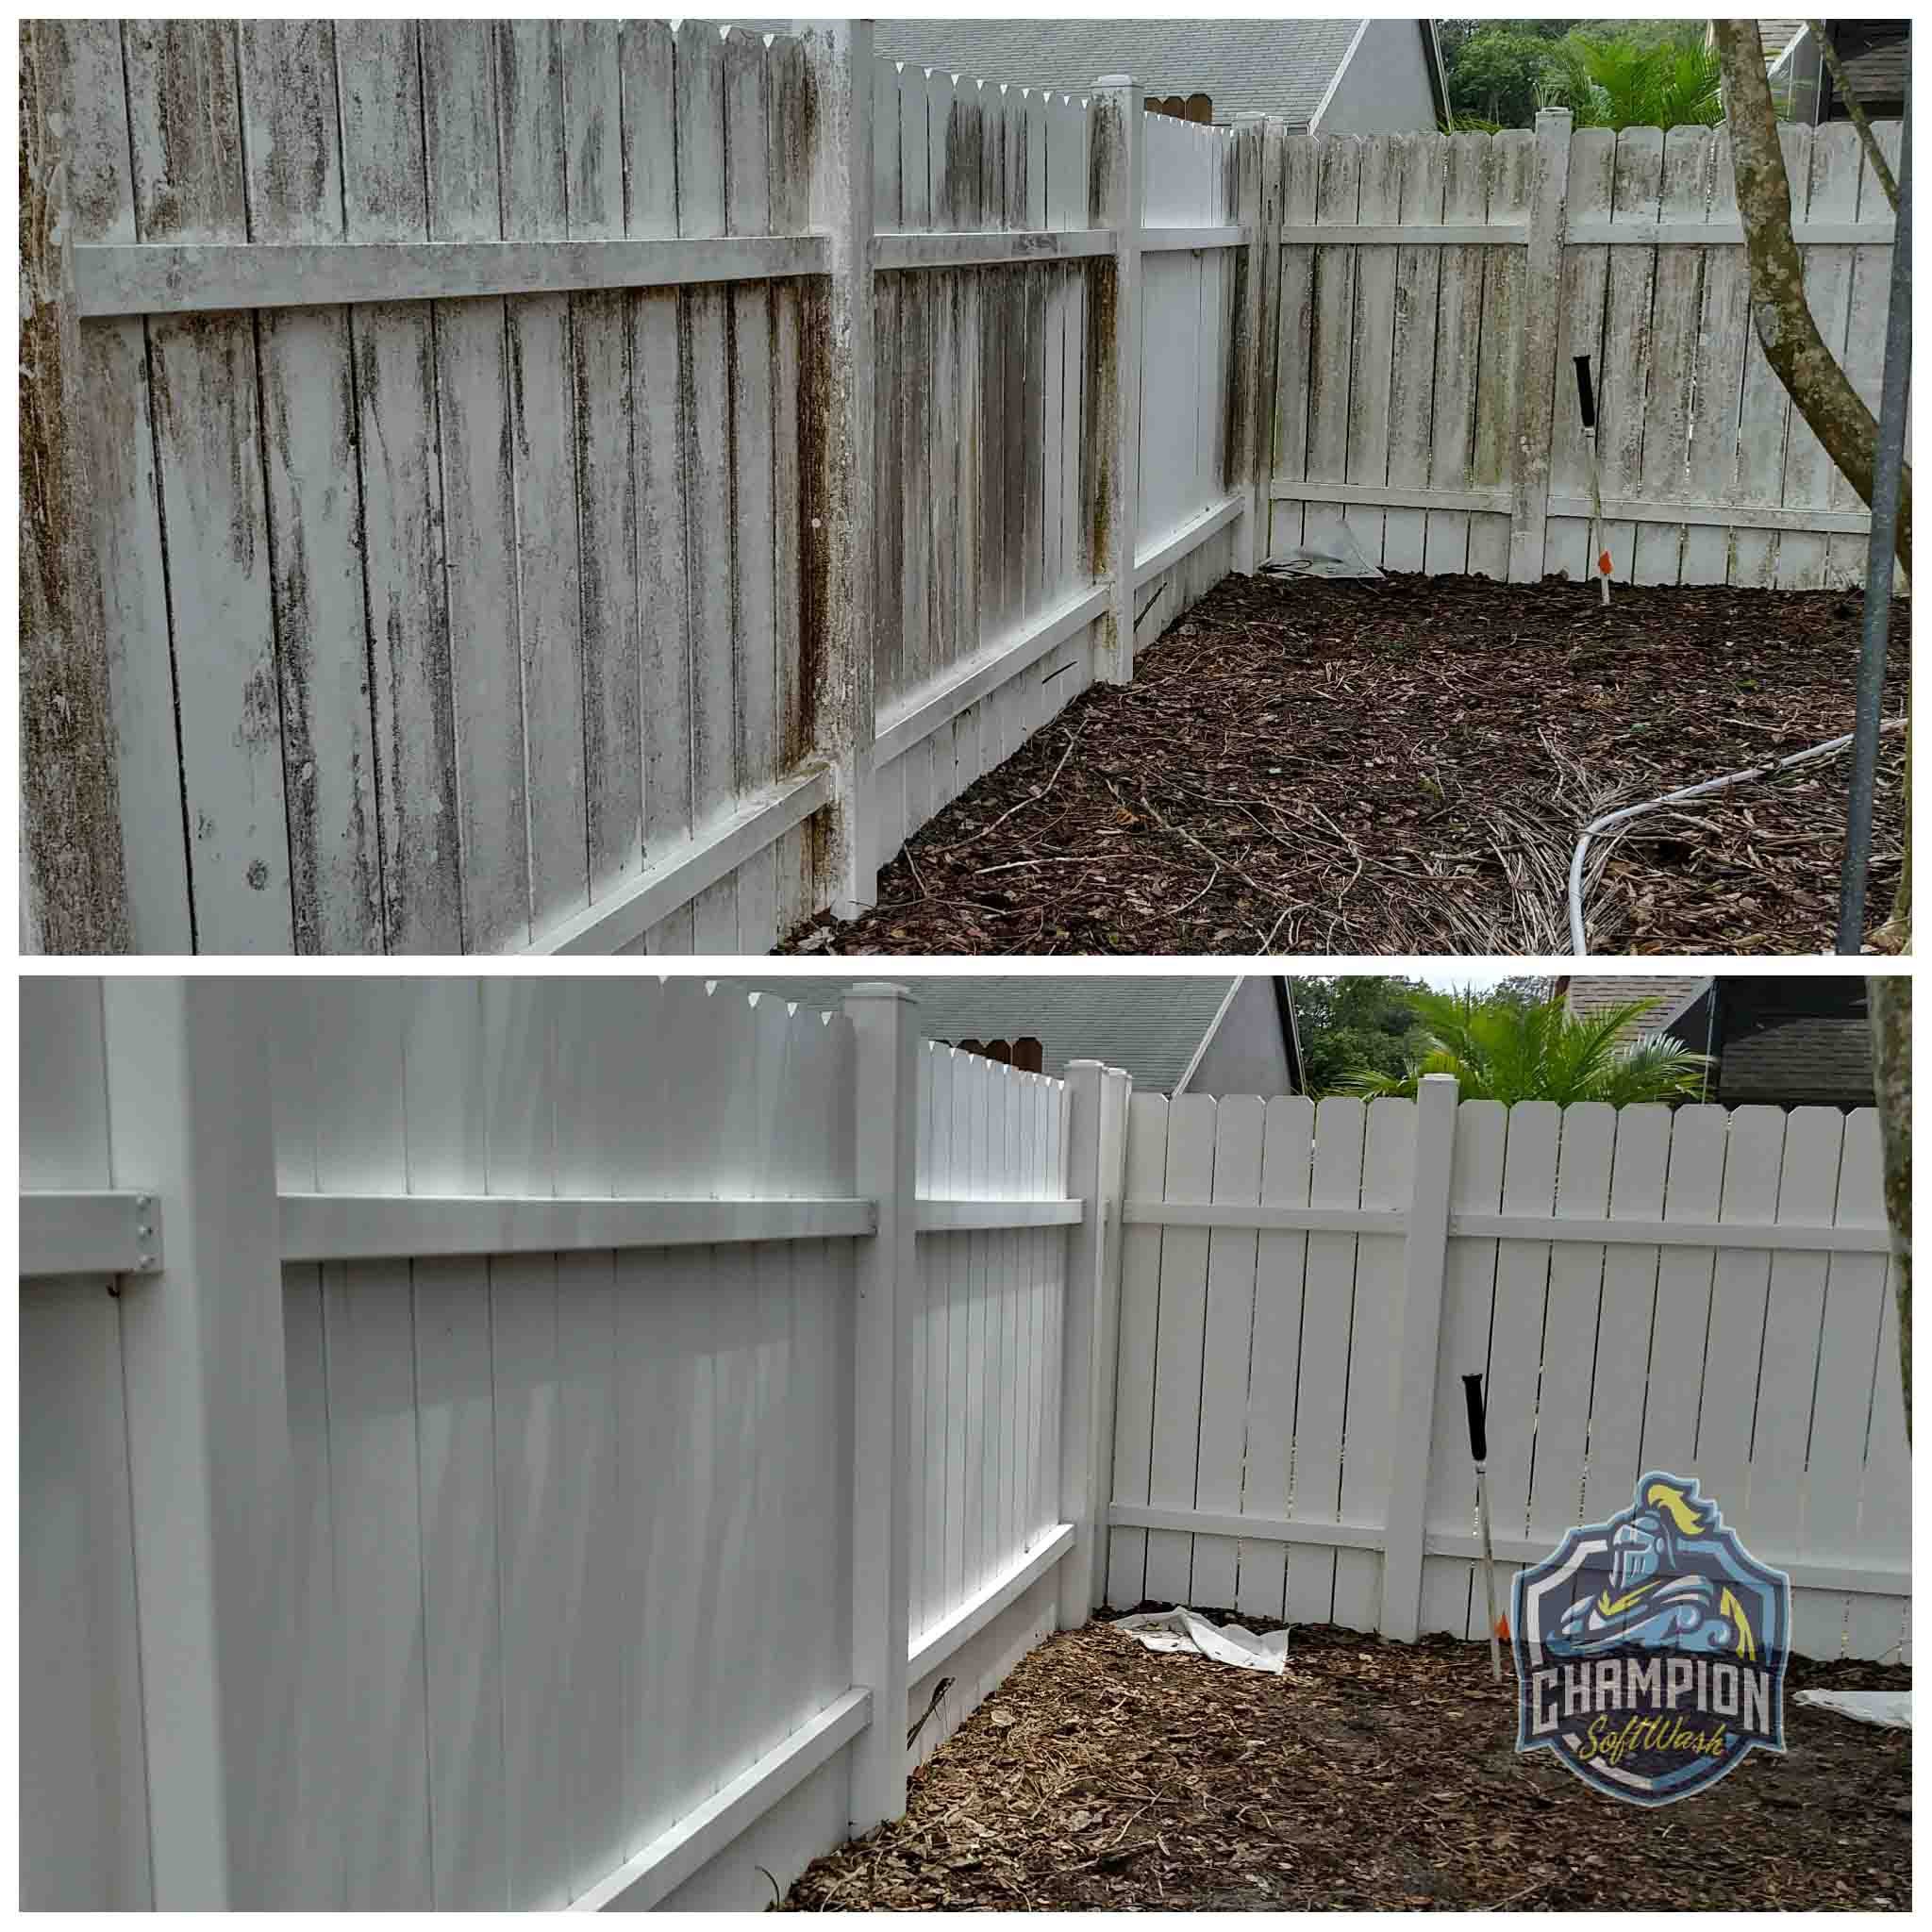 Dirty vinyl fence cleaned with low pressure soft washing, no pressure washer